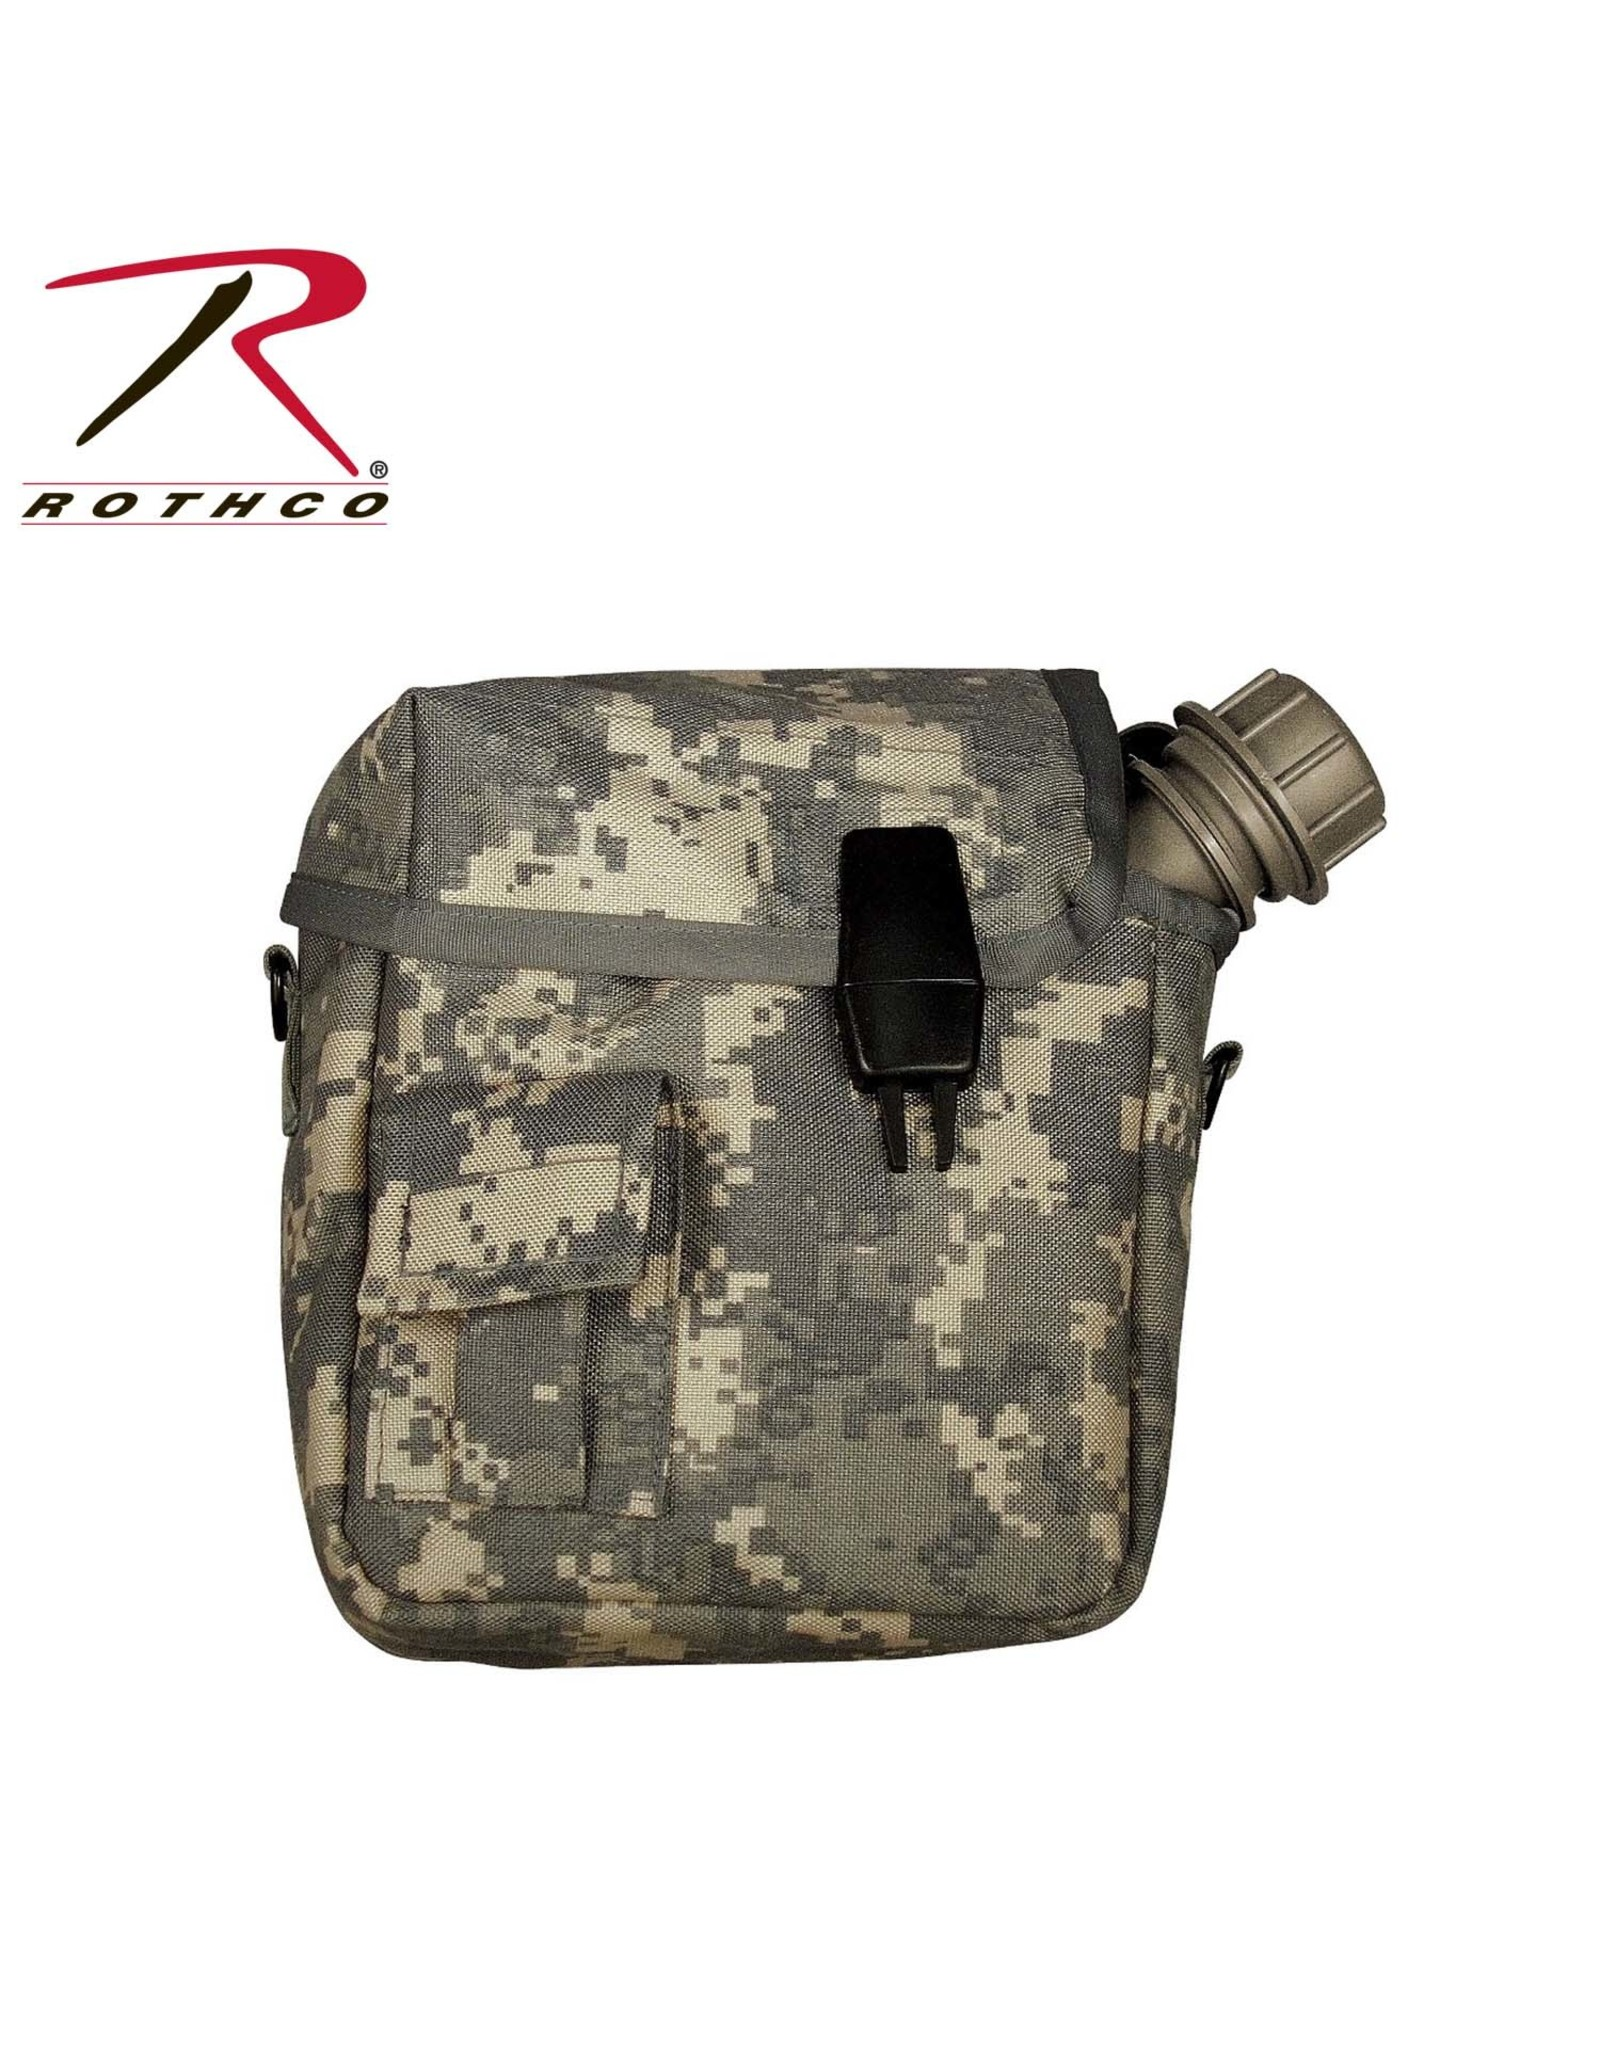 Rothco 2 QT Canteen Cover Molle - Multiple Colors